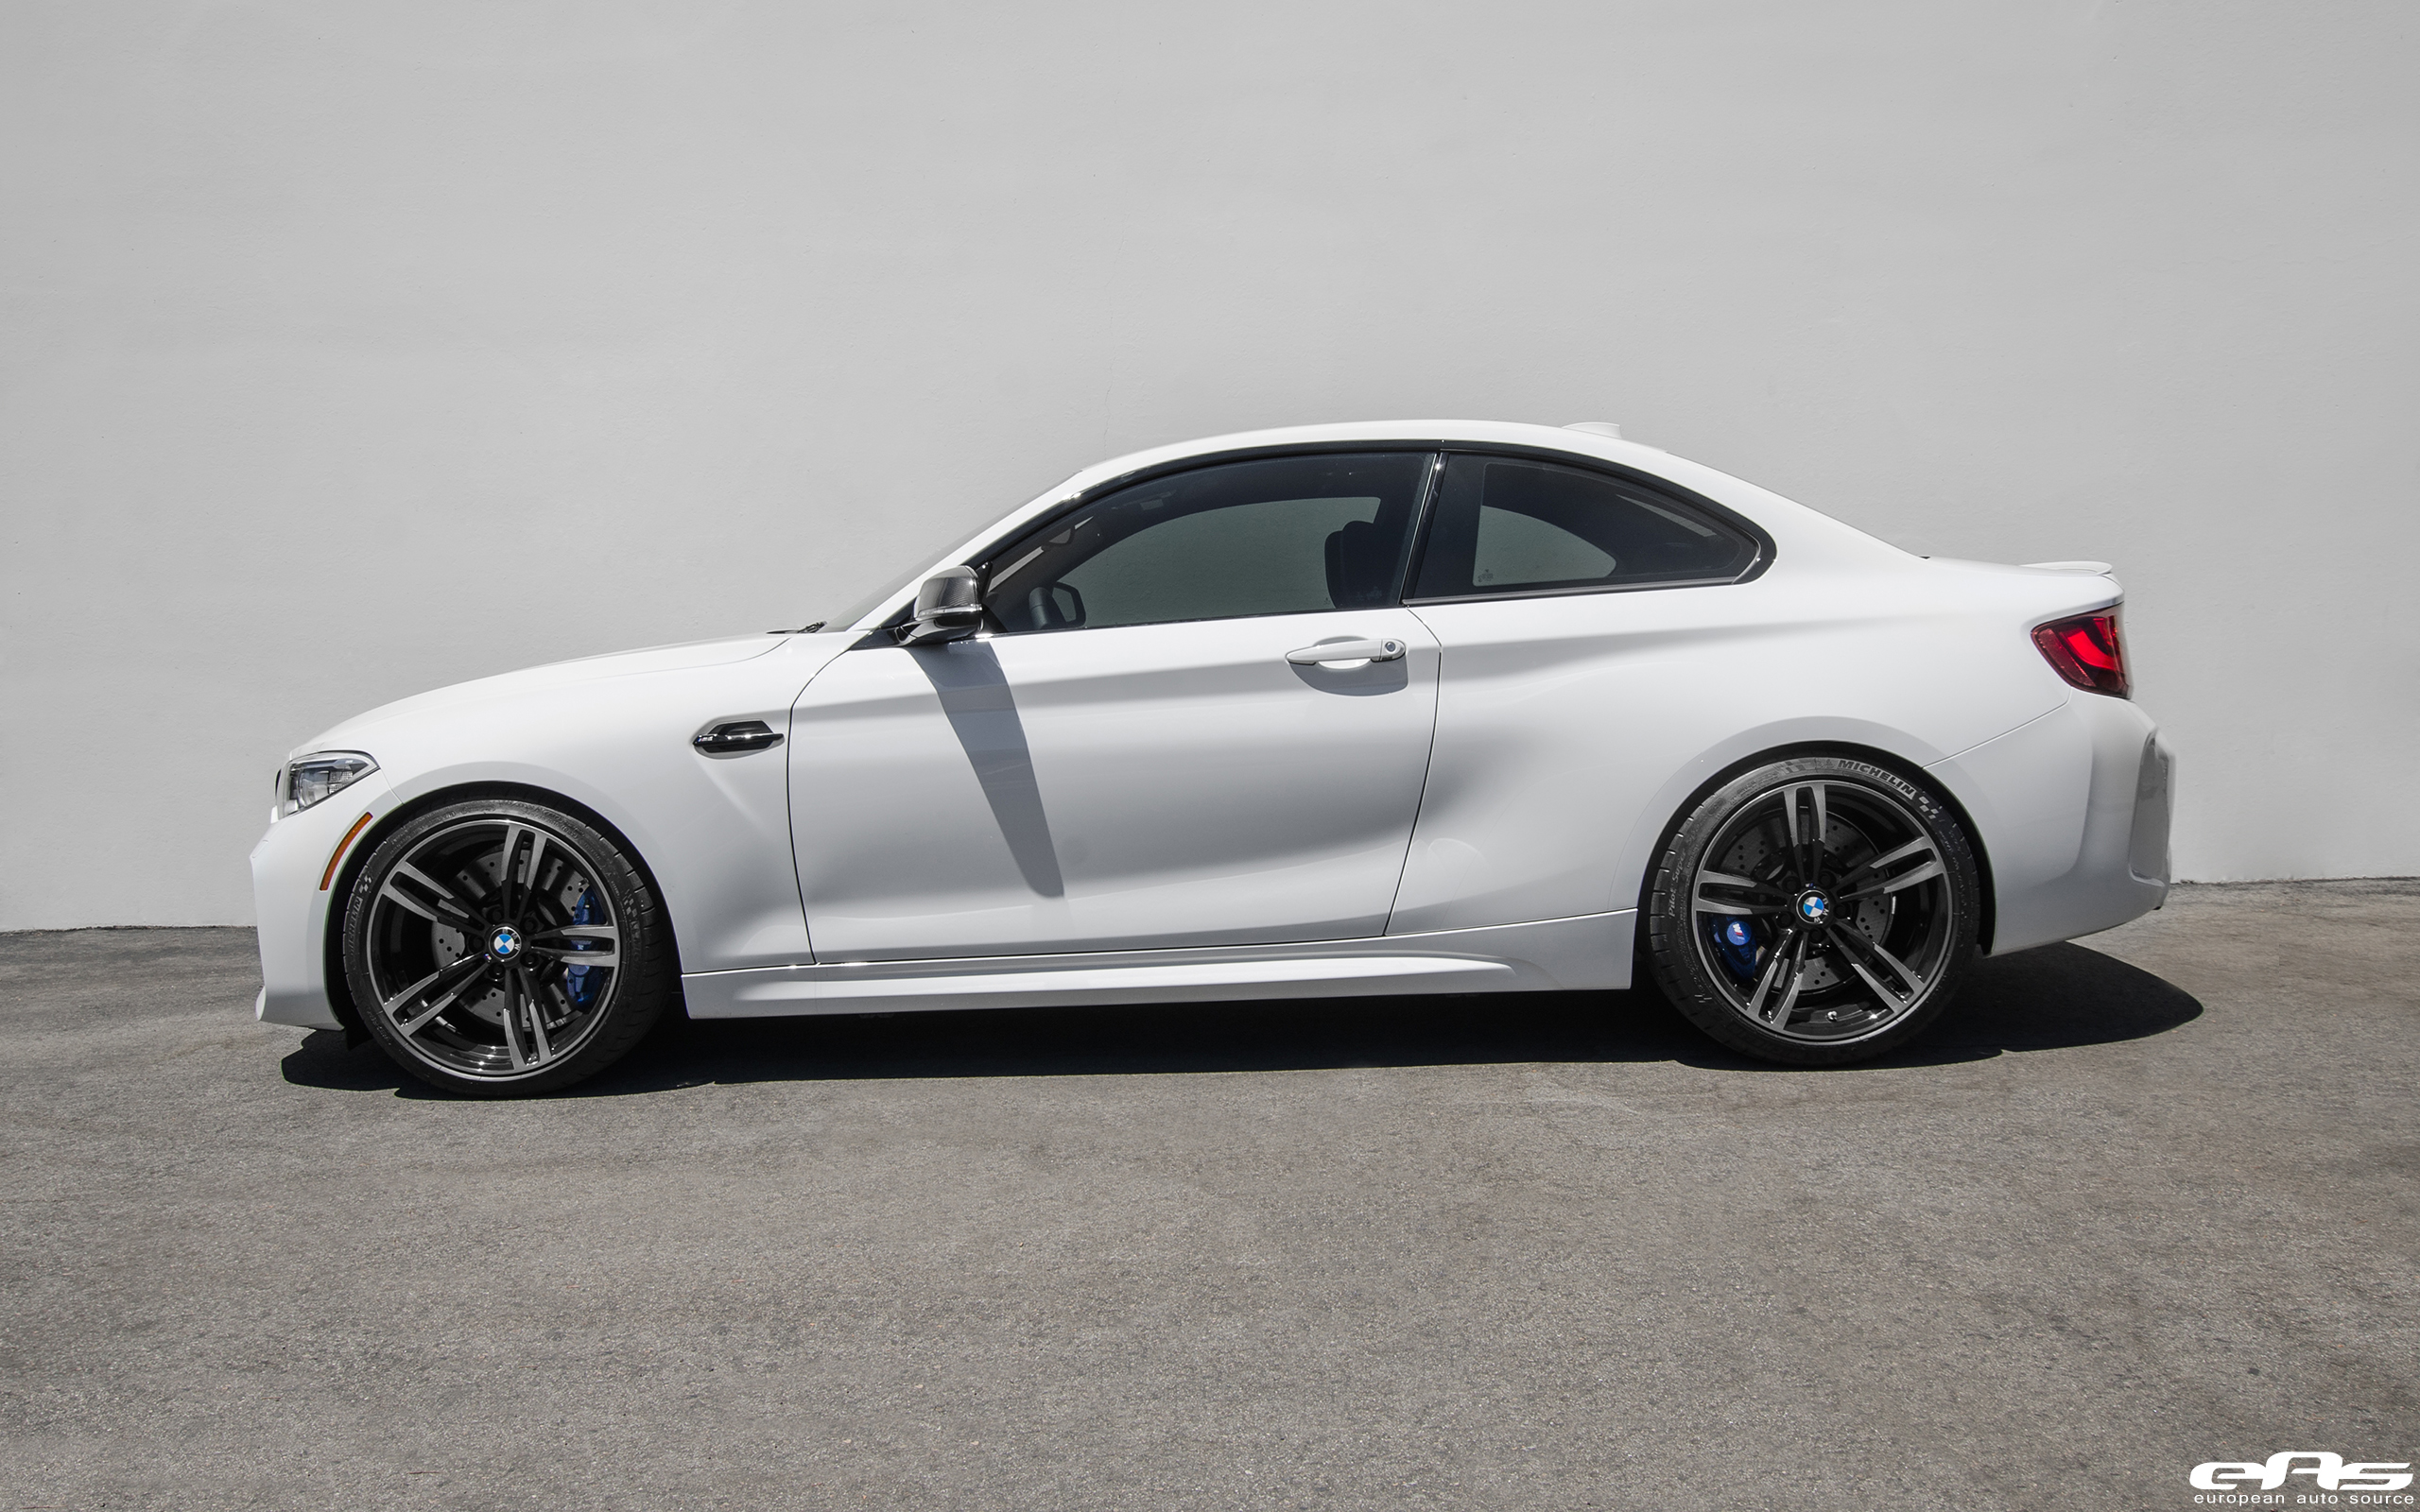 2016 Alpine White F87 M2 Ohlins Road And Track Bmw Performance Parts Amp Services